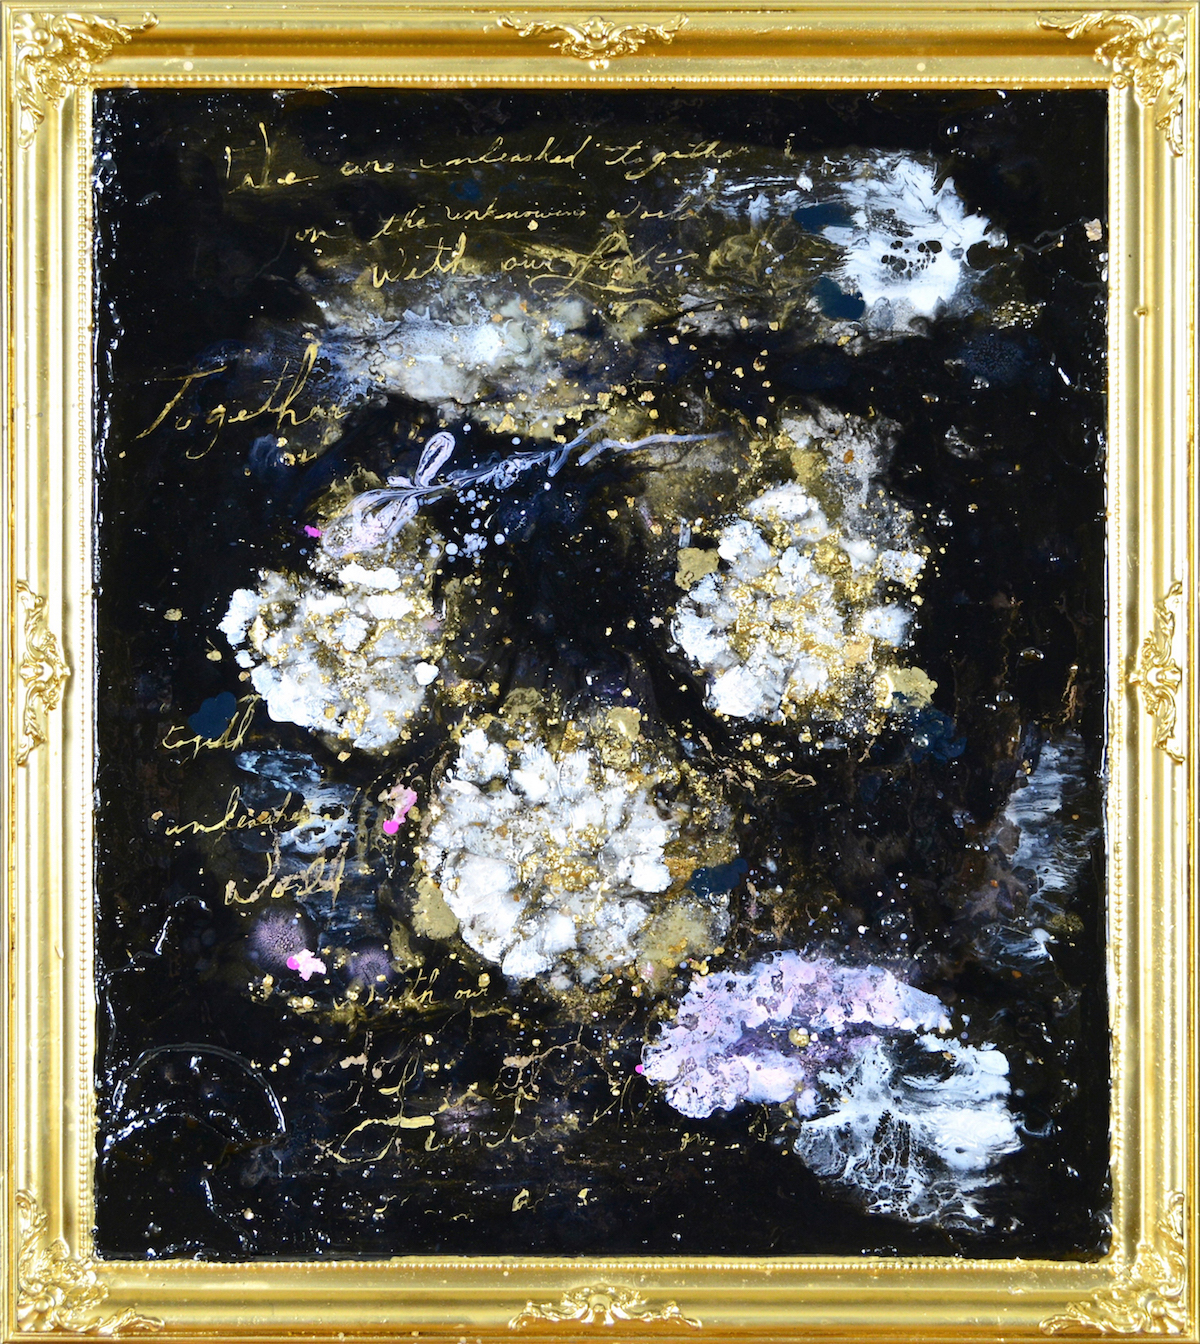 SARAH RASKEY - WE ARE UNLEASHED ON THE UNKNOWING WORLD WITH OUR LOVE - 29X25